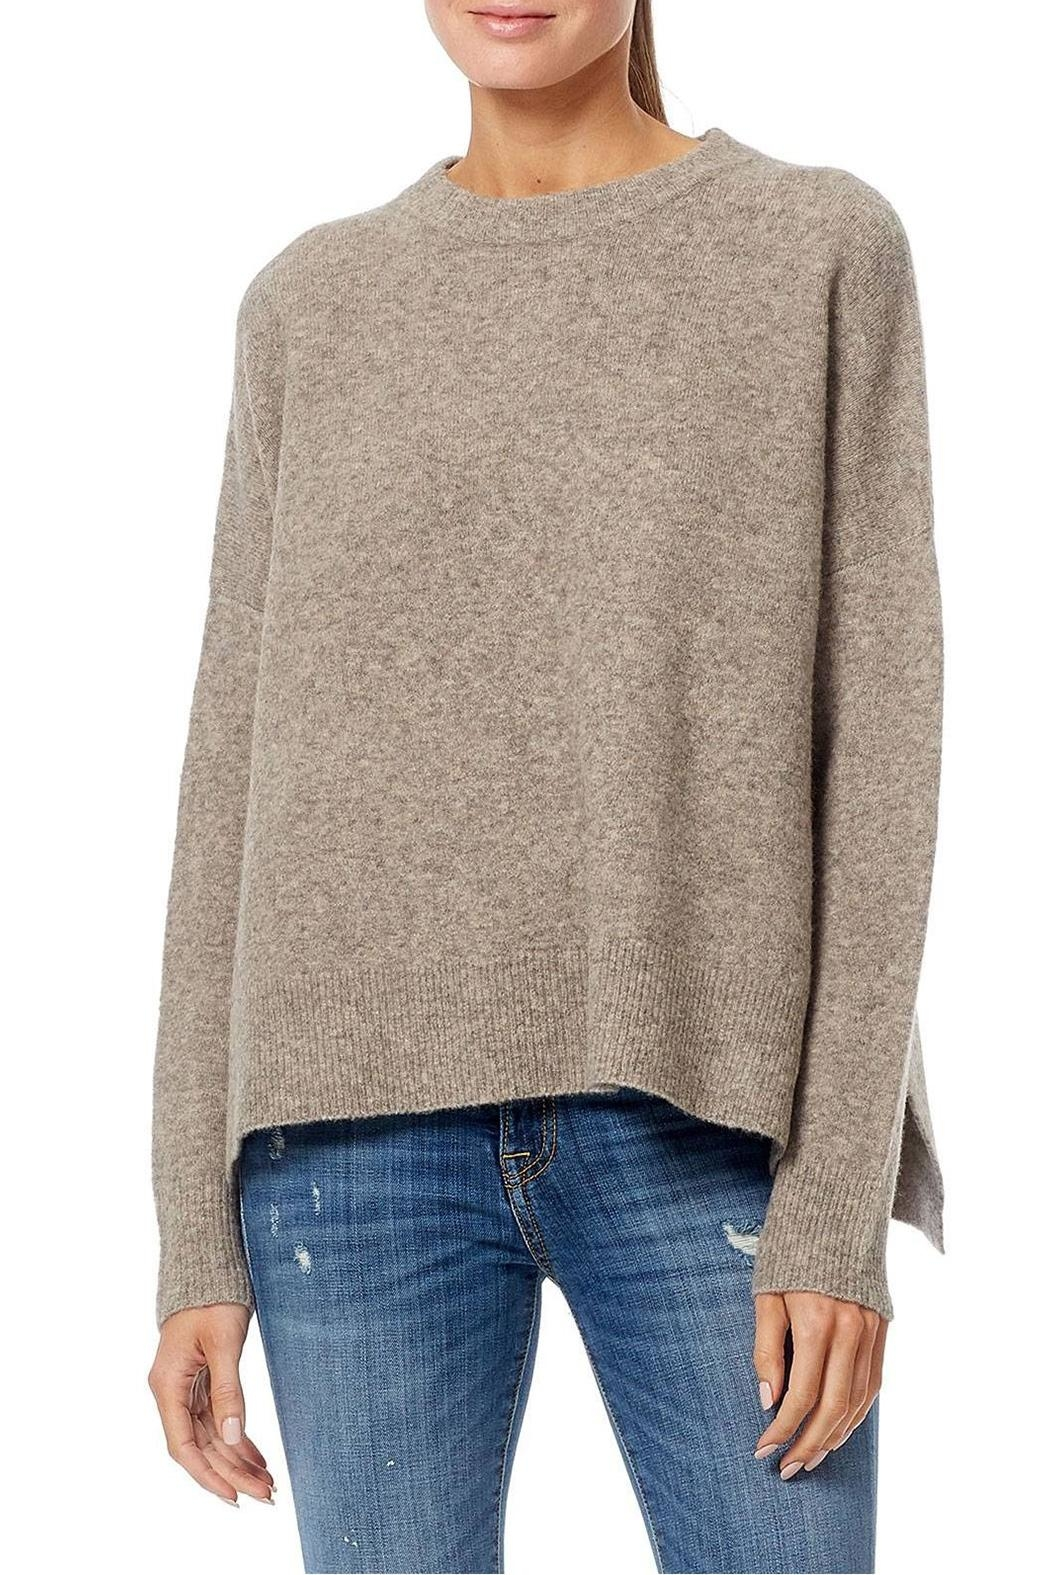 360 Cashmere Hanna Crew Neck Top - Main Image